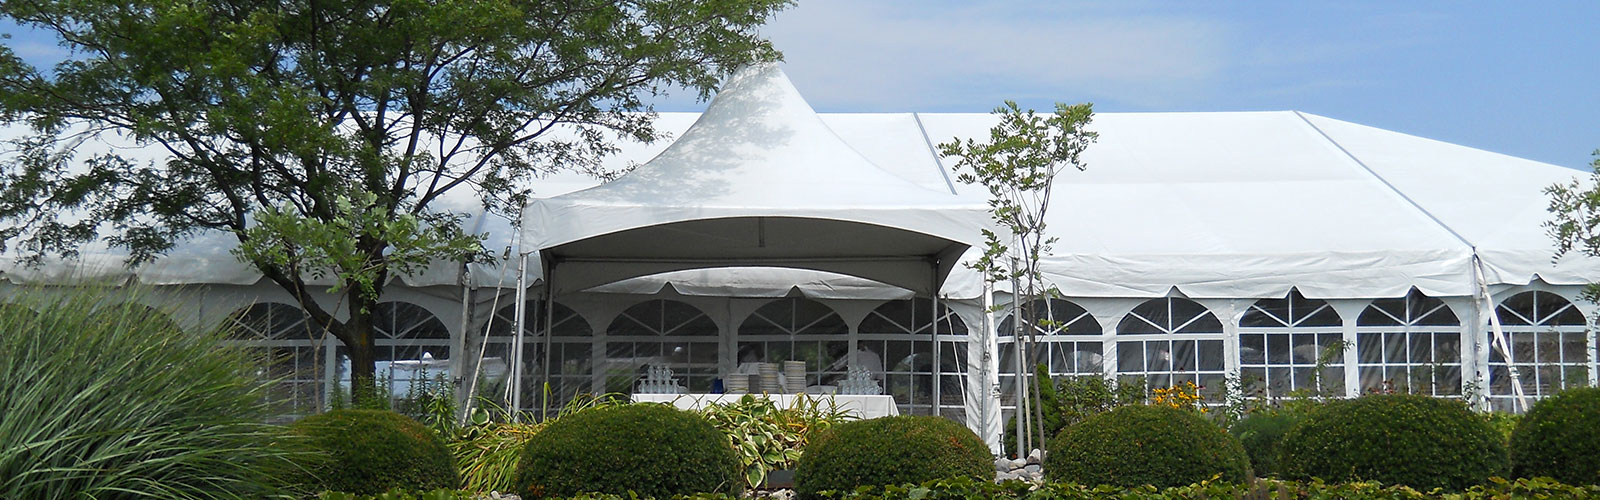 Tent rentals in Southwest Michigan